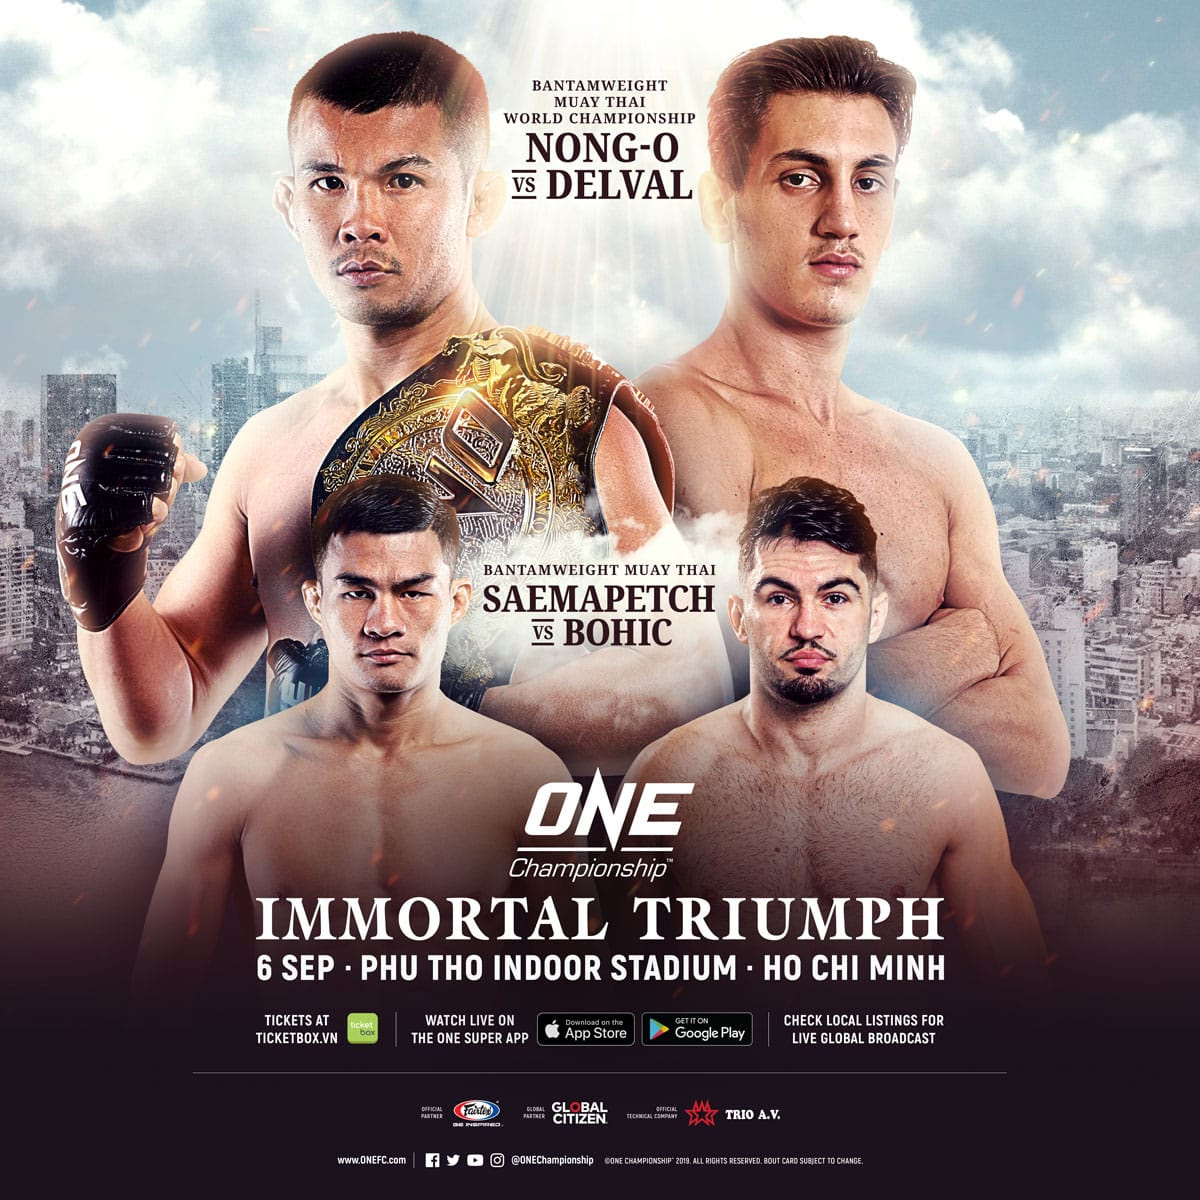 ONE: IMMORTAL TRIUMPH to be held in Vietnam